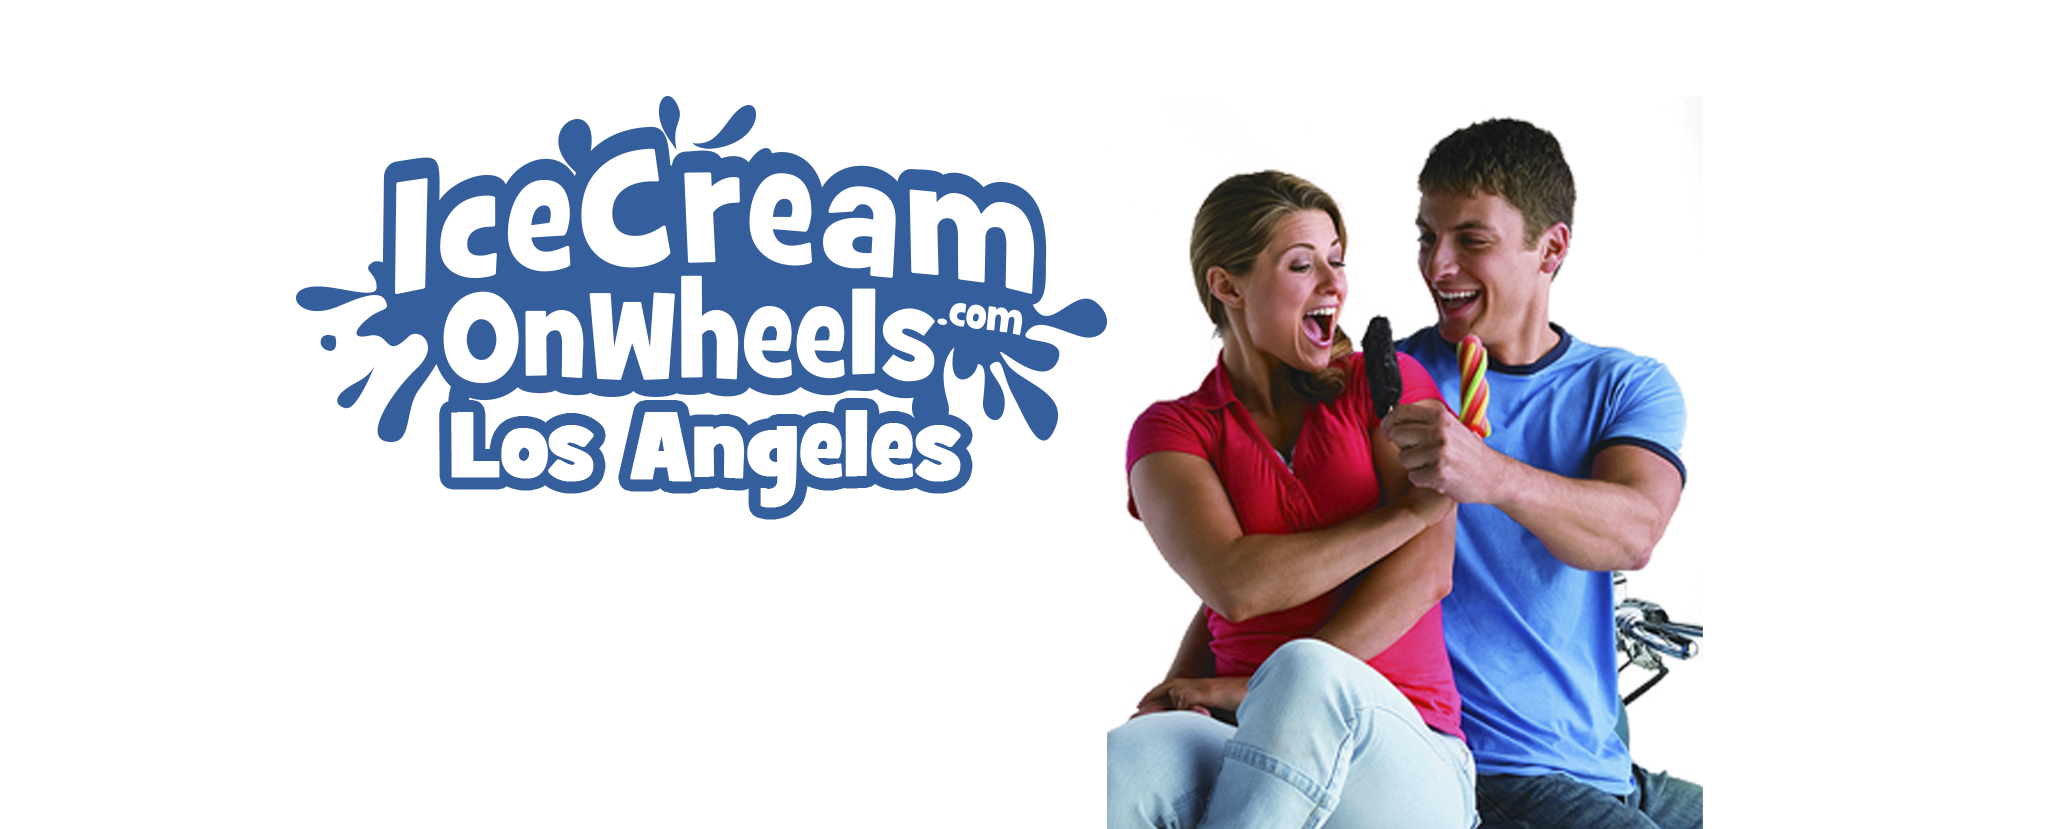 Sporting Events Ice Cream Trucks Orange County CA